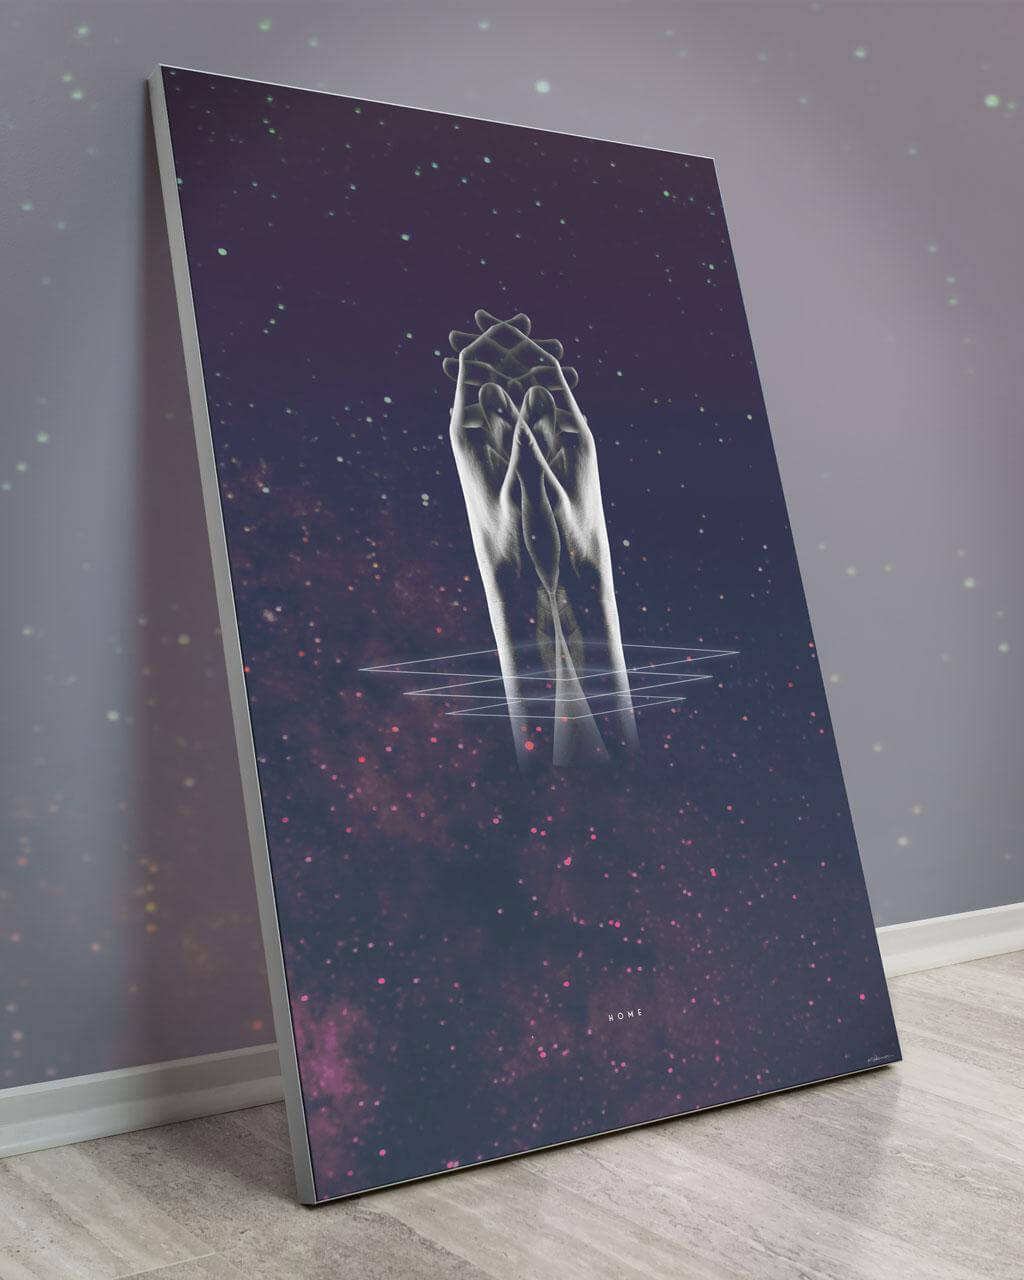 Feels like Home | Krista Hansen | a Slanted Space Wall Art Piece with Two Cosmic Hands